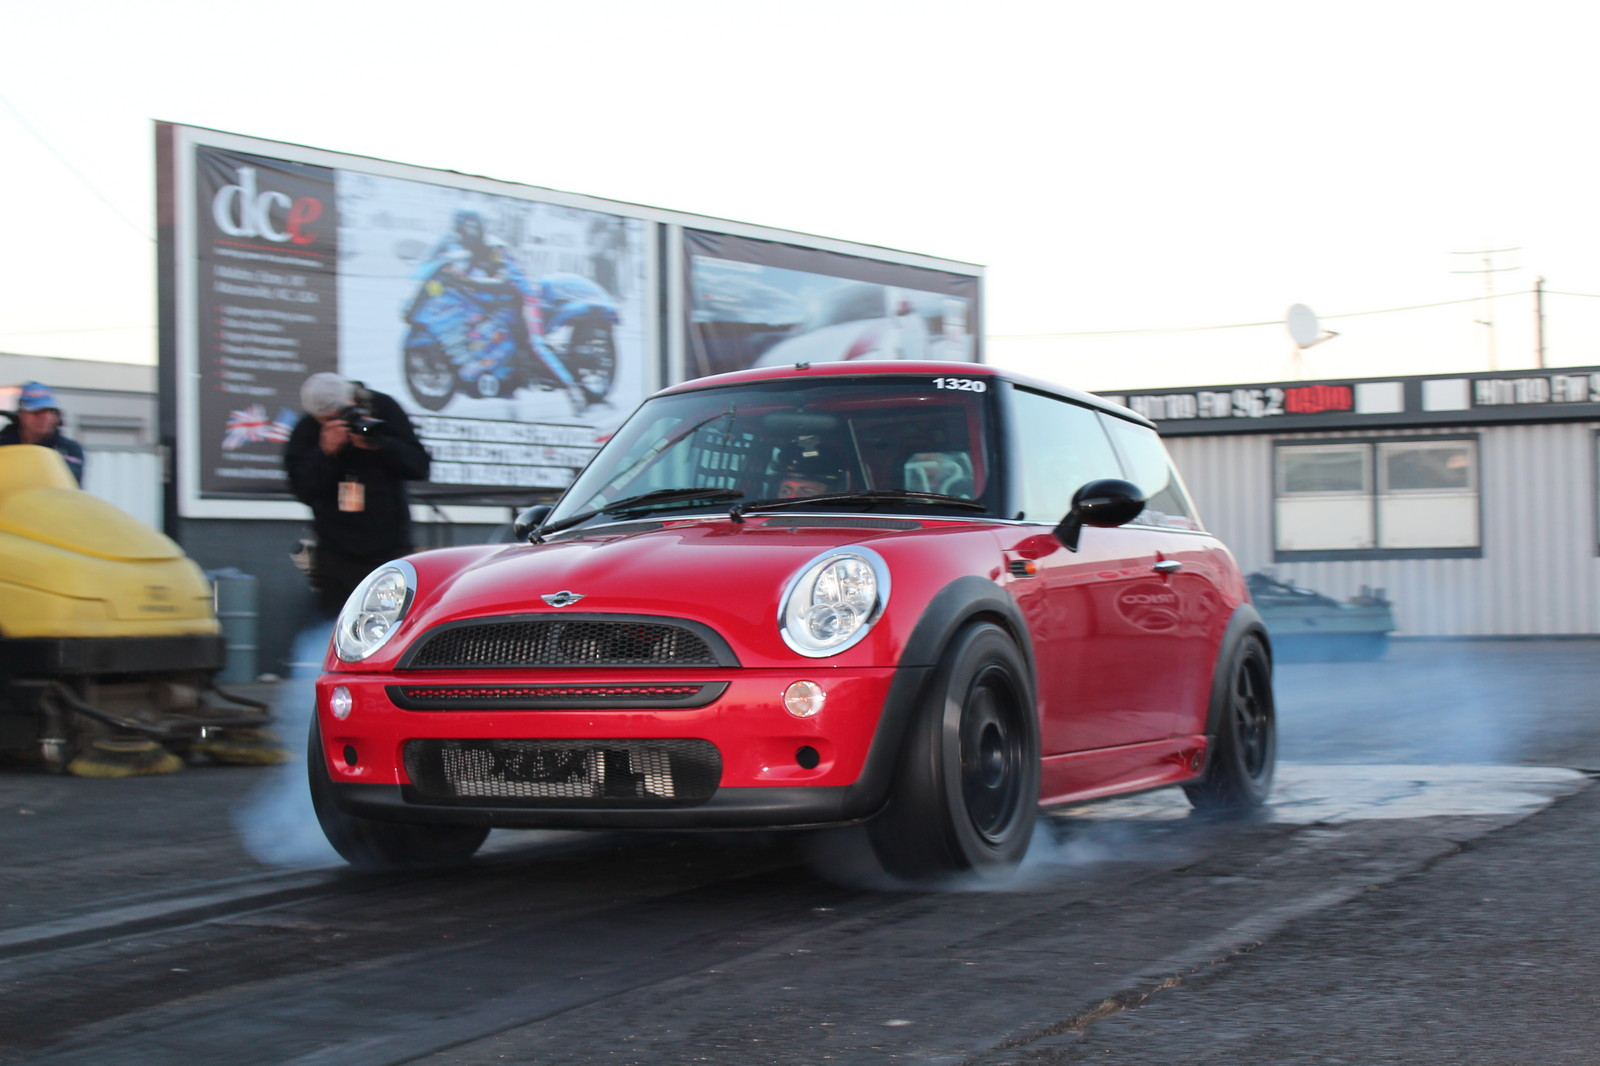 2002 Red Mini Cooper S picture, mods, upgrades